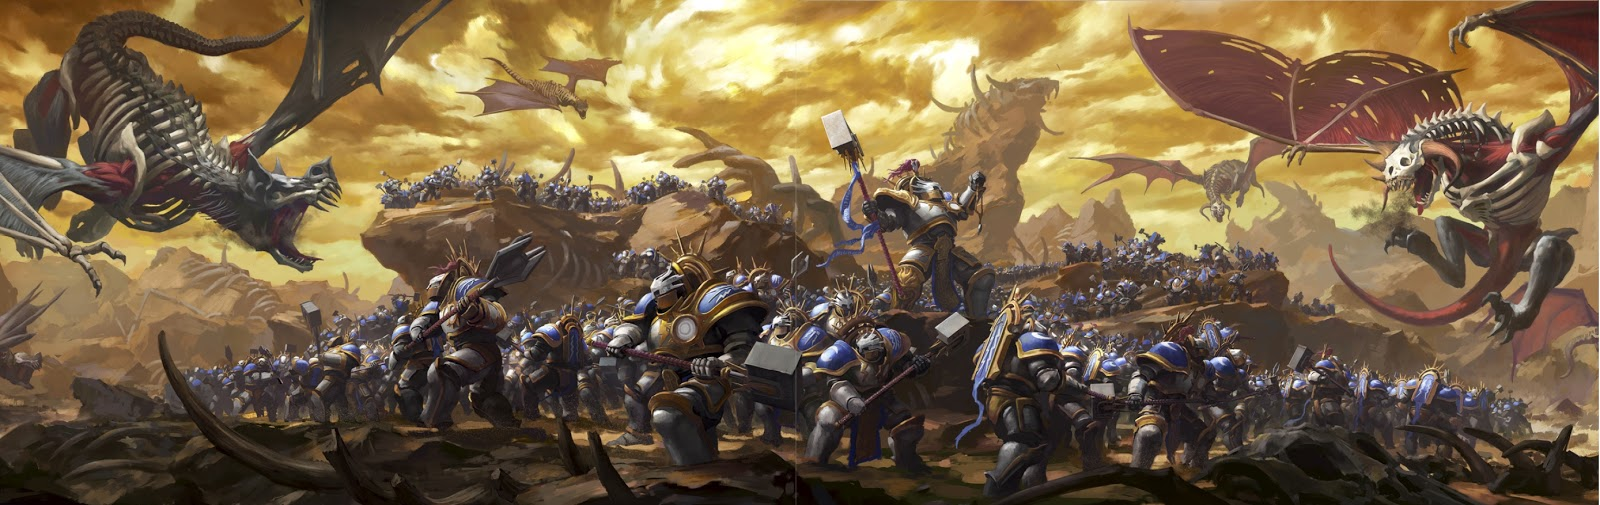 Well Of Eternity Warhammer Age Of Sigmar Artworks From Age Of